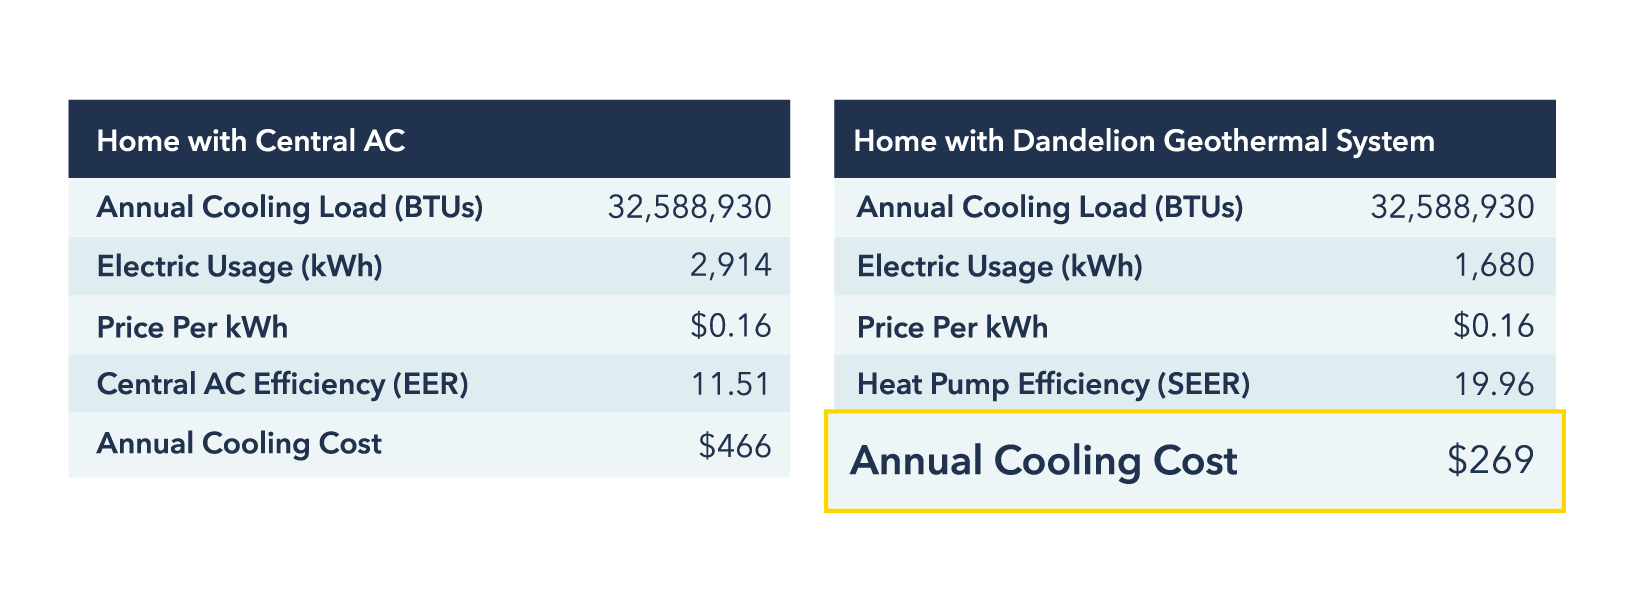 Central AC Versus Geothermal Annual Operating Costs